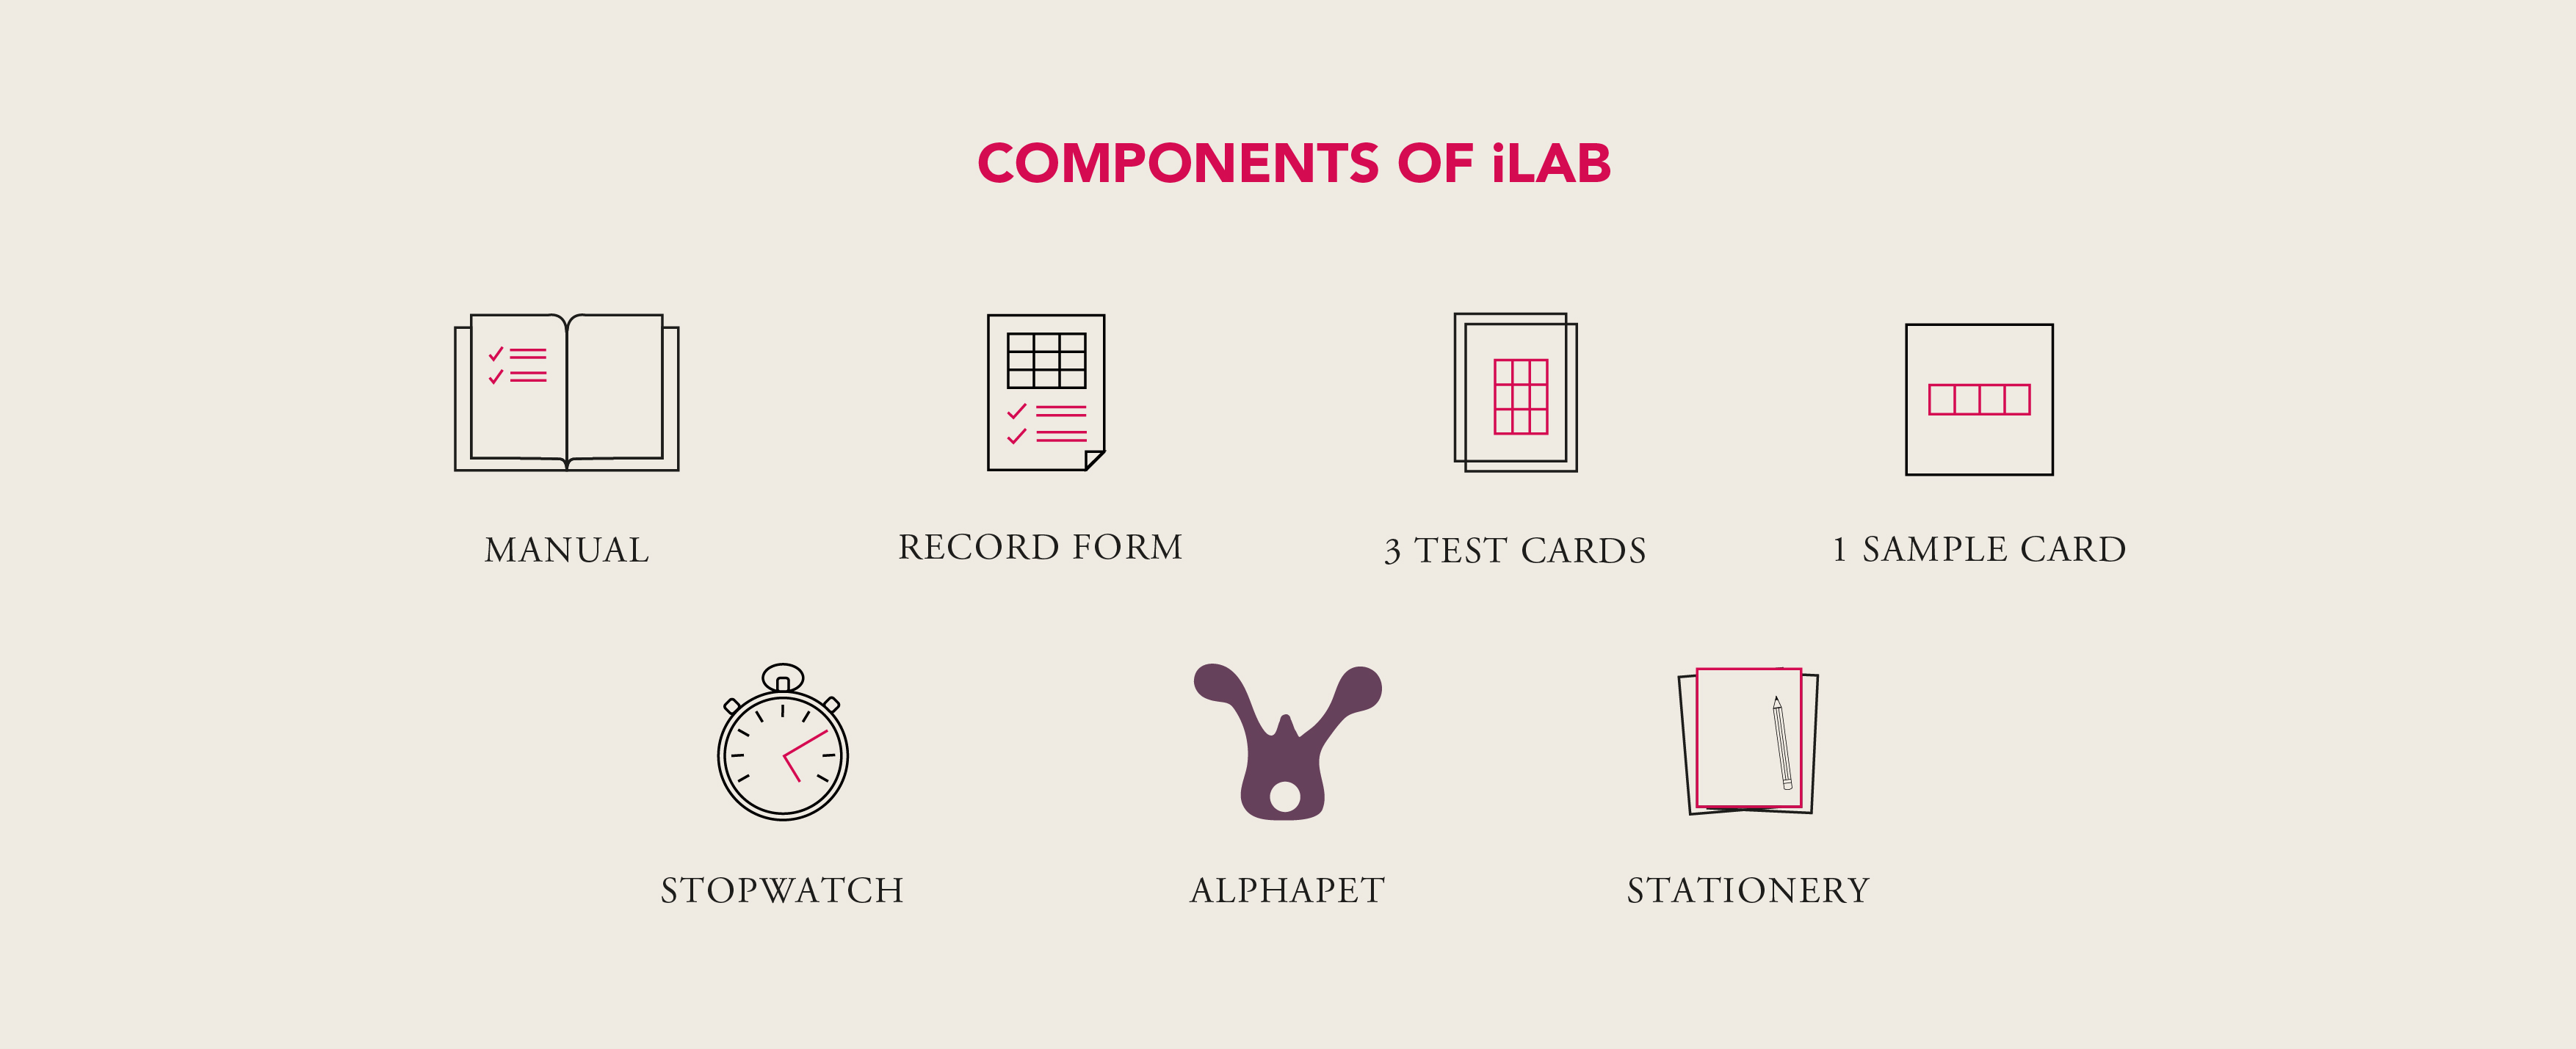 iLAB Components